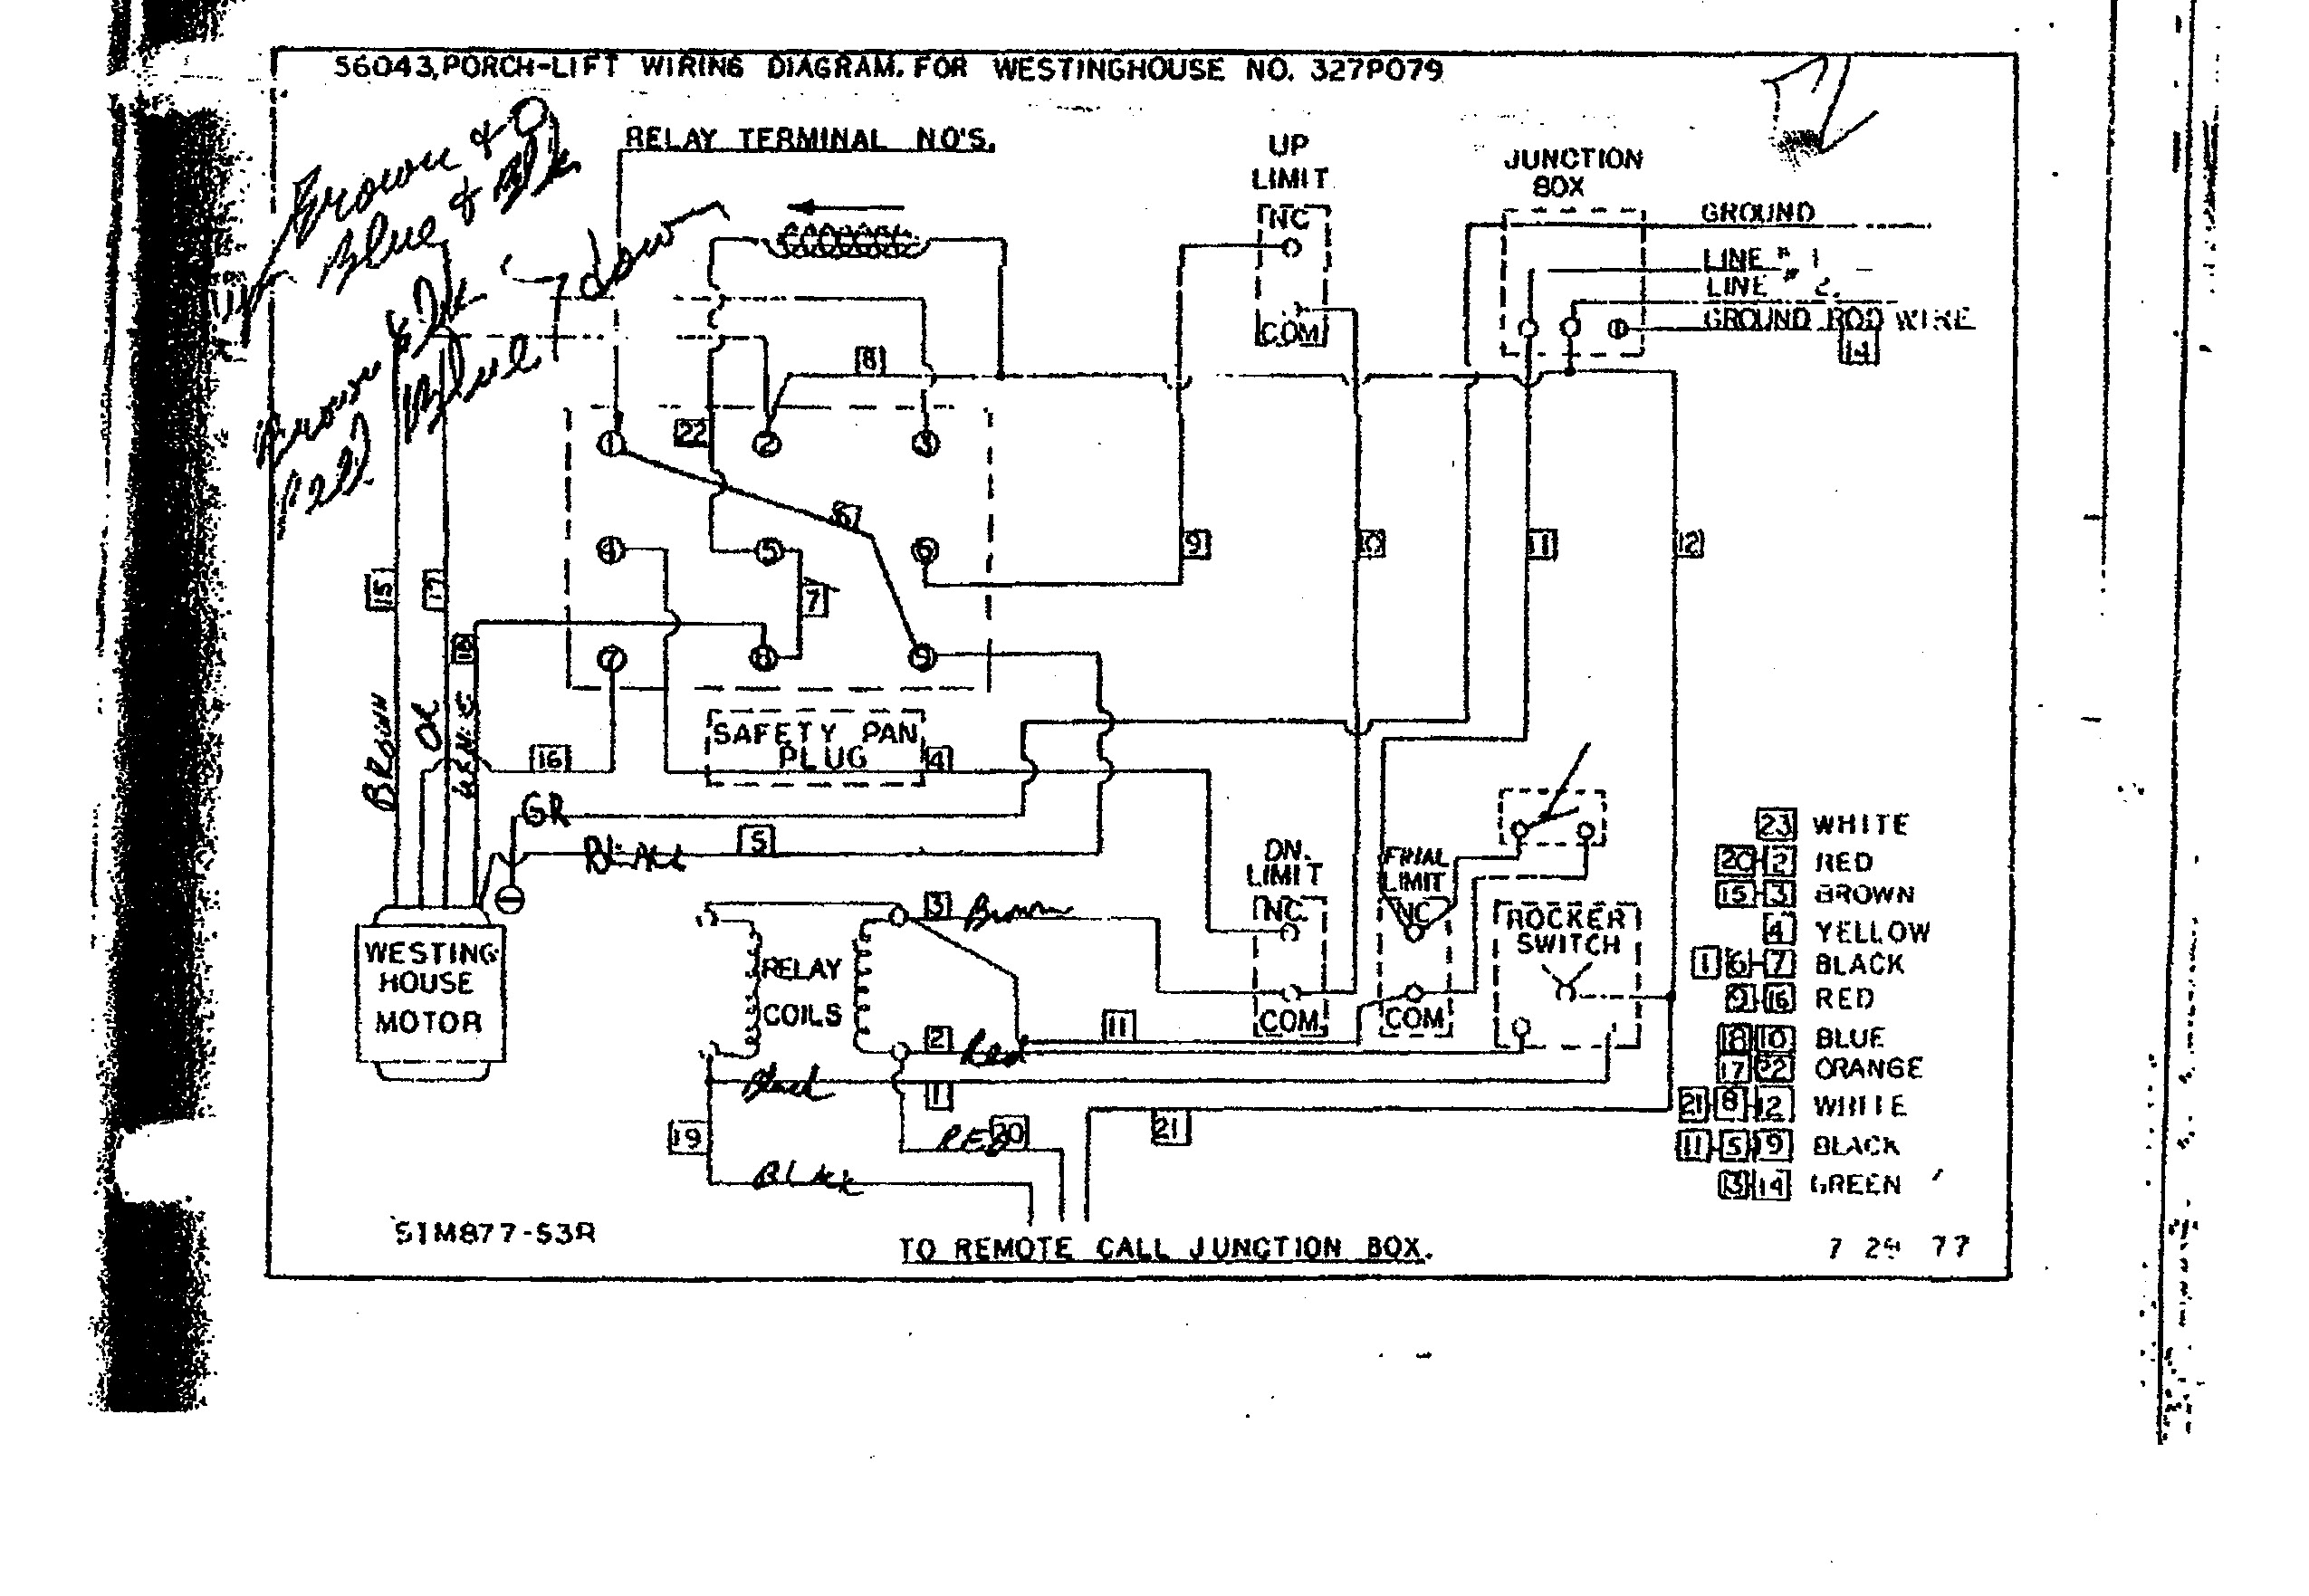 dryer wire diagram with 4exll Help Westinghouse Motor Wiring on Washer Motor Wiring Diagrams together with Dodge Avenger Blower Motor Wiring Diagram additionally Breckwell Pellet Stove Wiring Diagram 1975 likewise Johnson troubleshooting in addition 2ohy9 Chrysler Town Country Awd There Ground Wire.